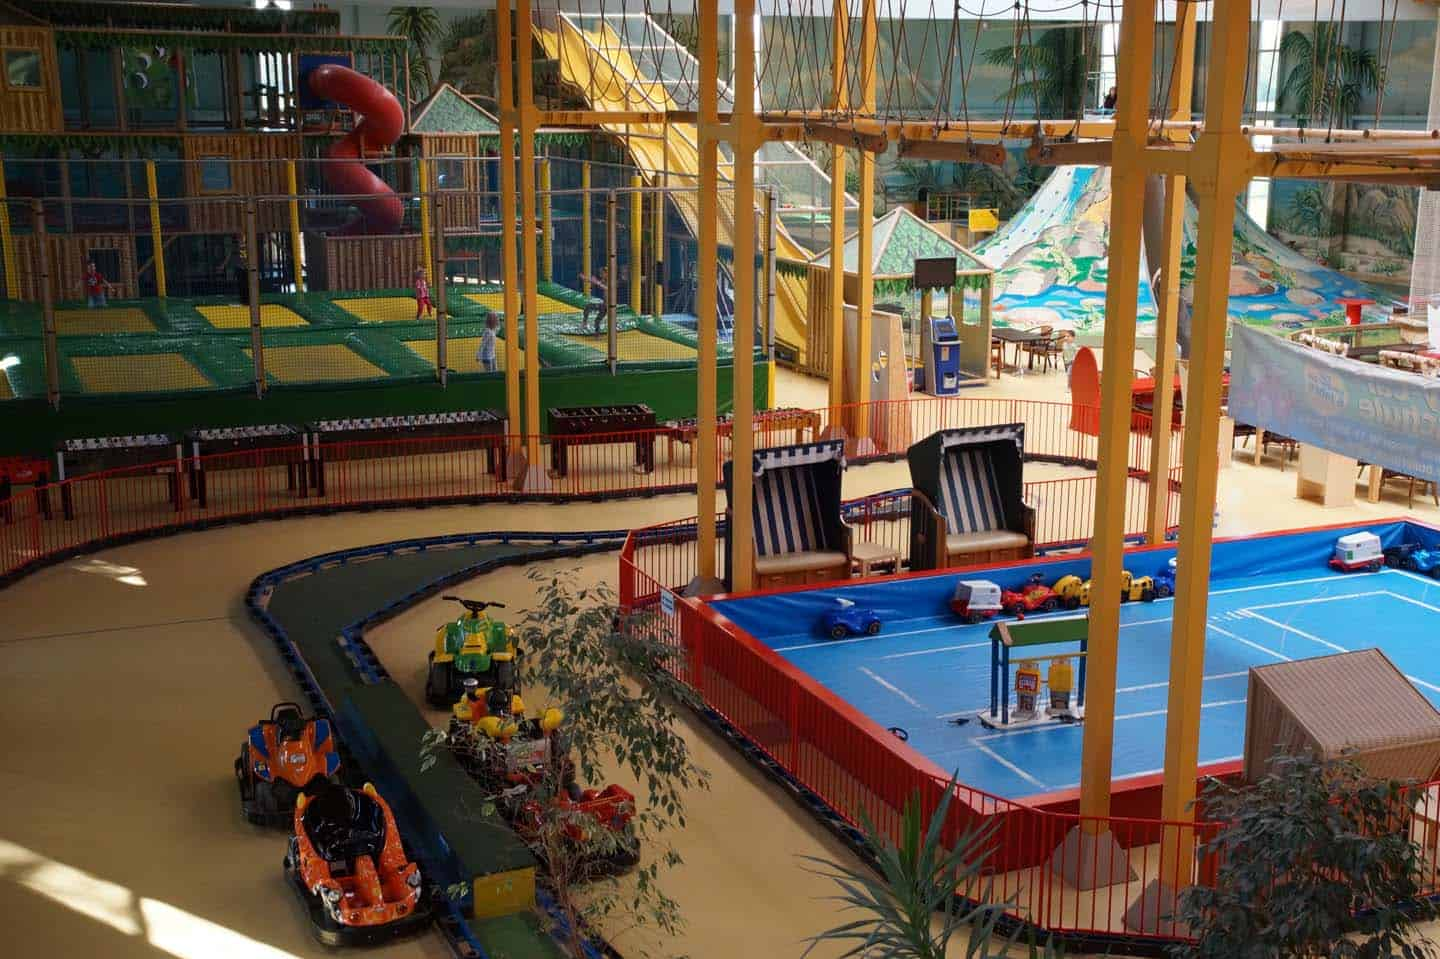 Bullermeck Fun Center